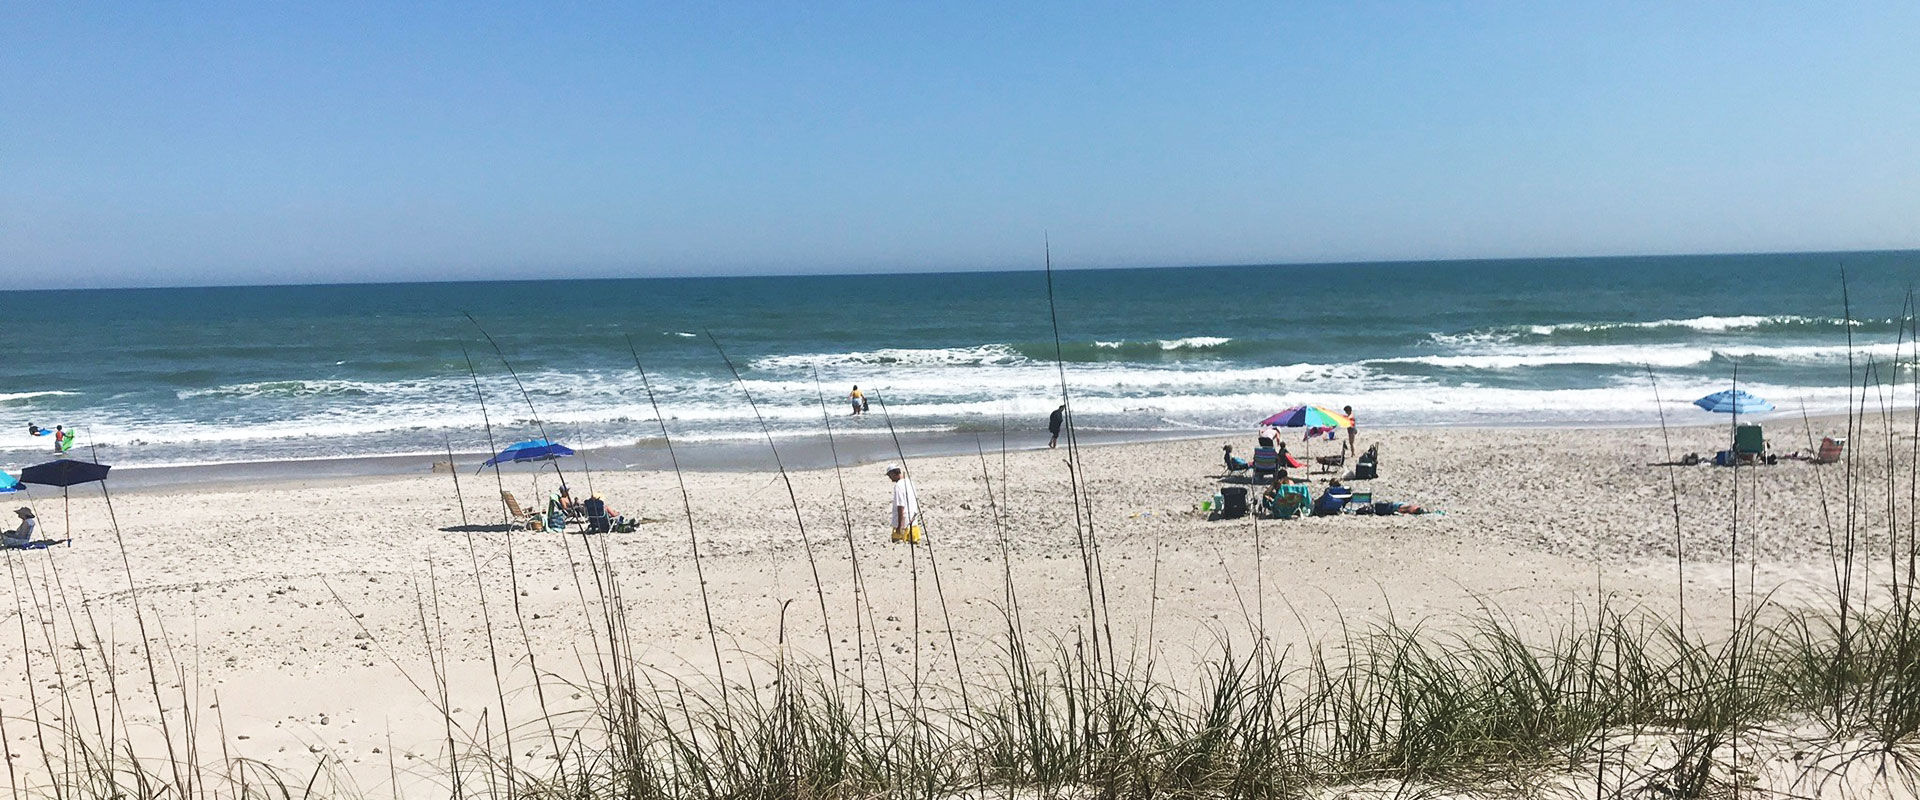 Topsail Island Beach Walking Distance From Your Topsail Island Vacation Rental